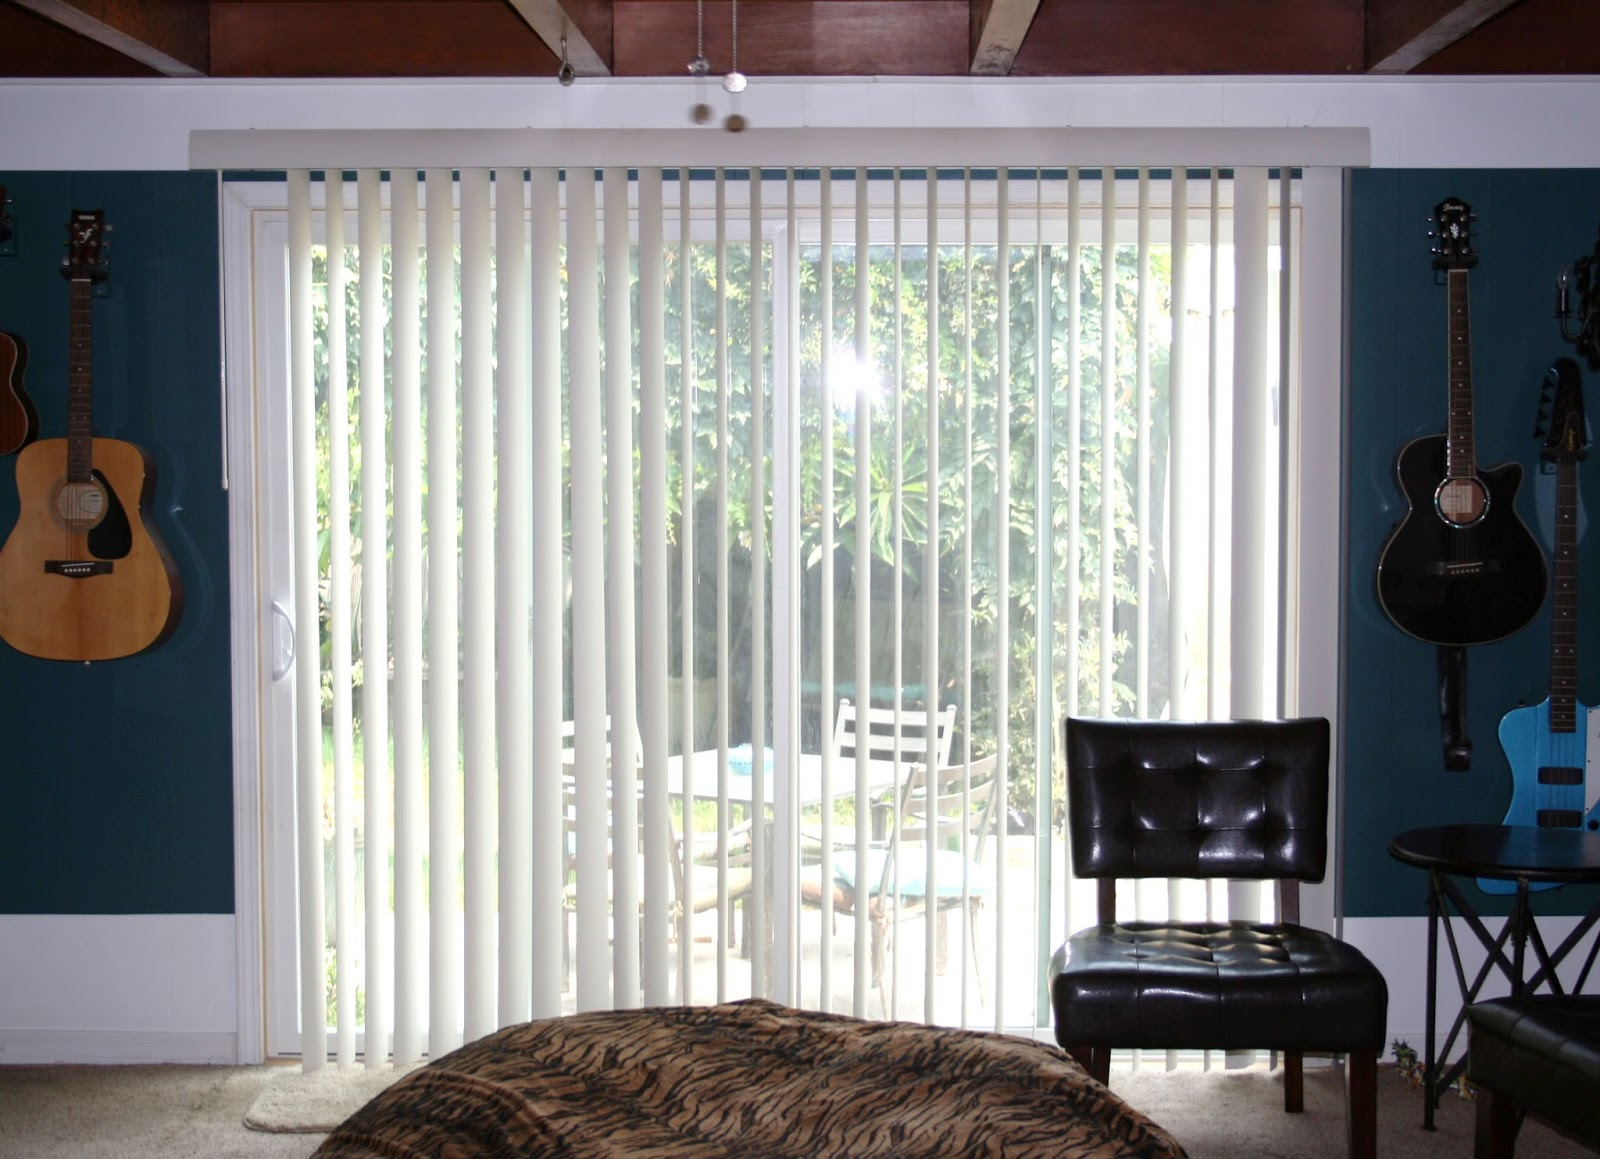 Hanging Curtains On A Vertical Blind Track